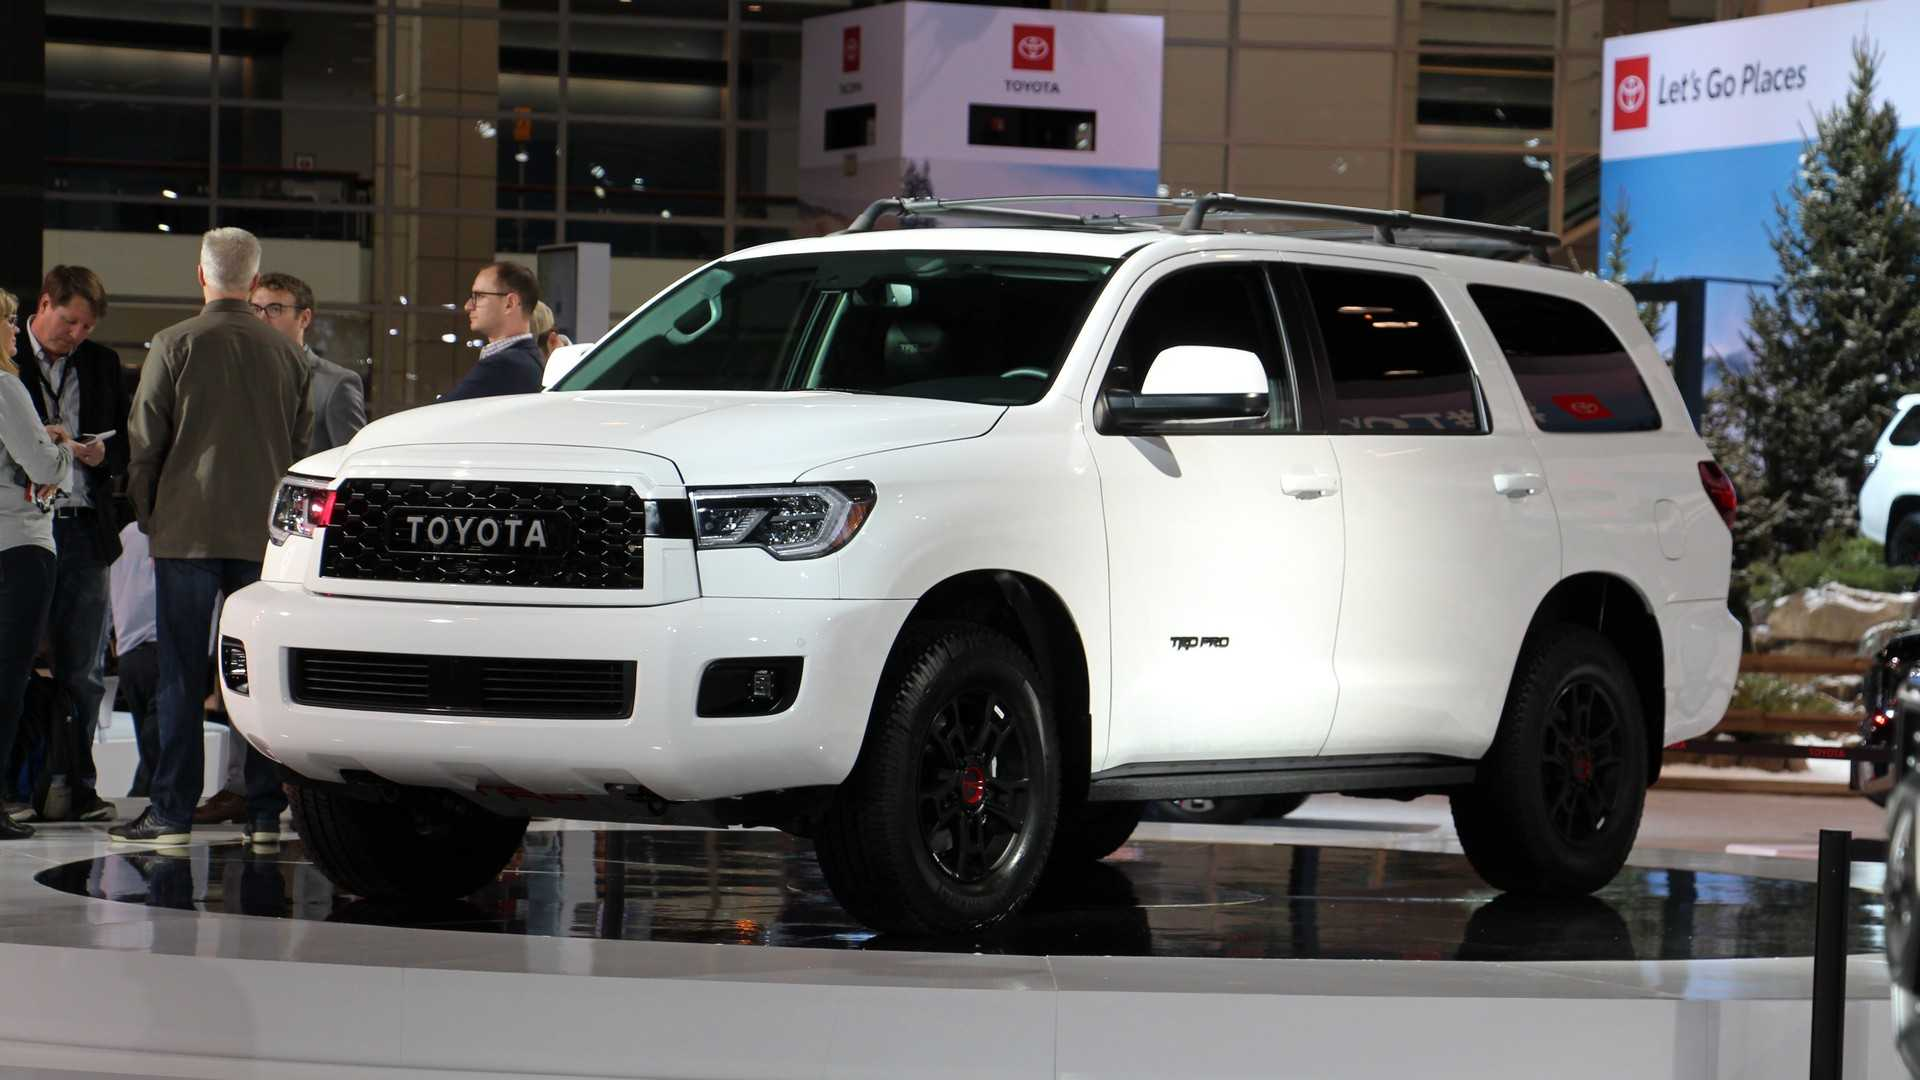 2020 Toyota Sequoia Review, Interior, TRD Pro >> Toyota Sequoia Trd Pro Teaches An Old Dog New Tricks In Chicago